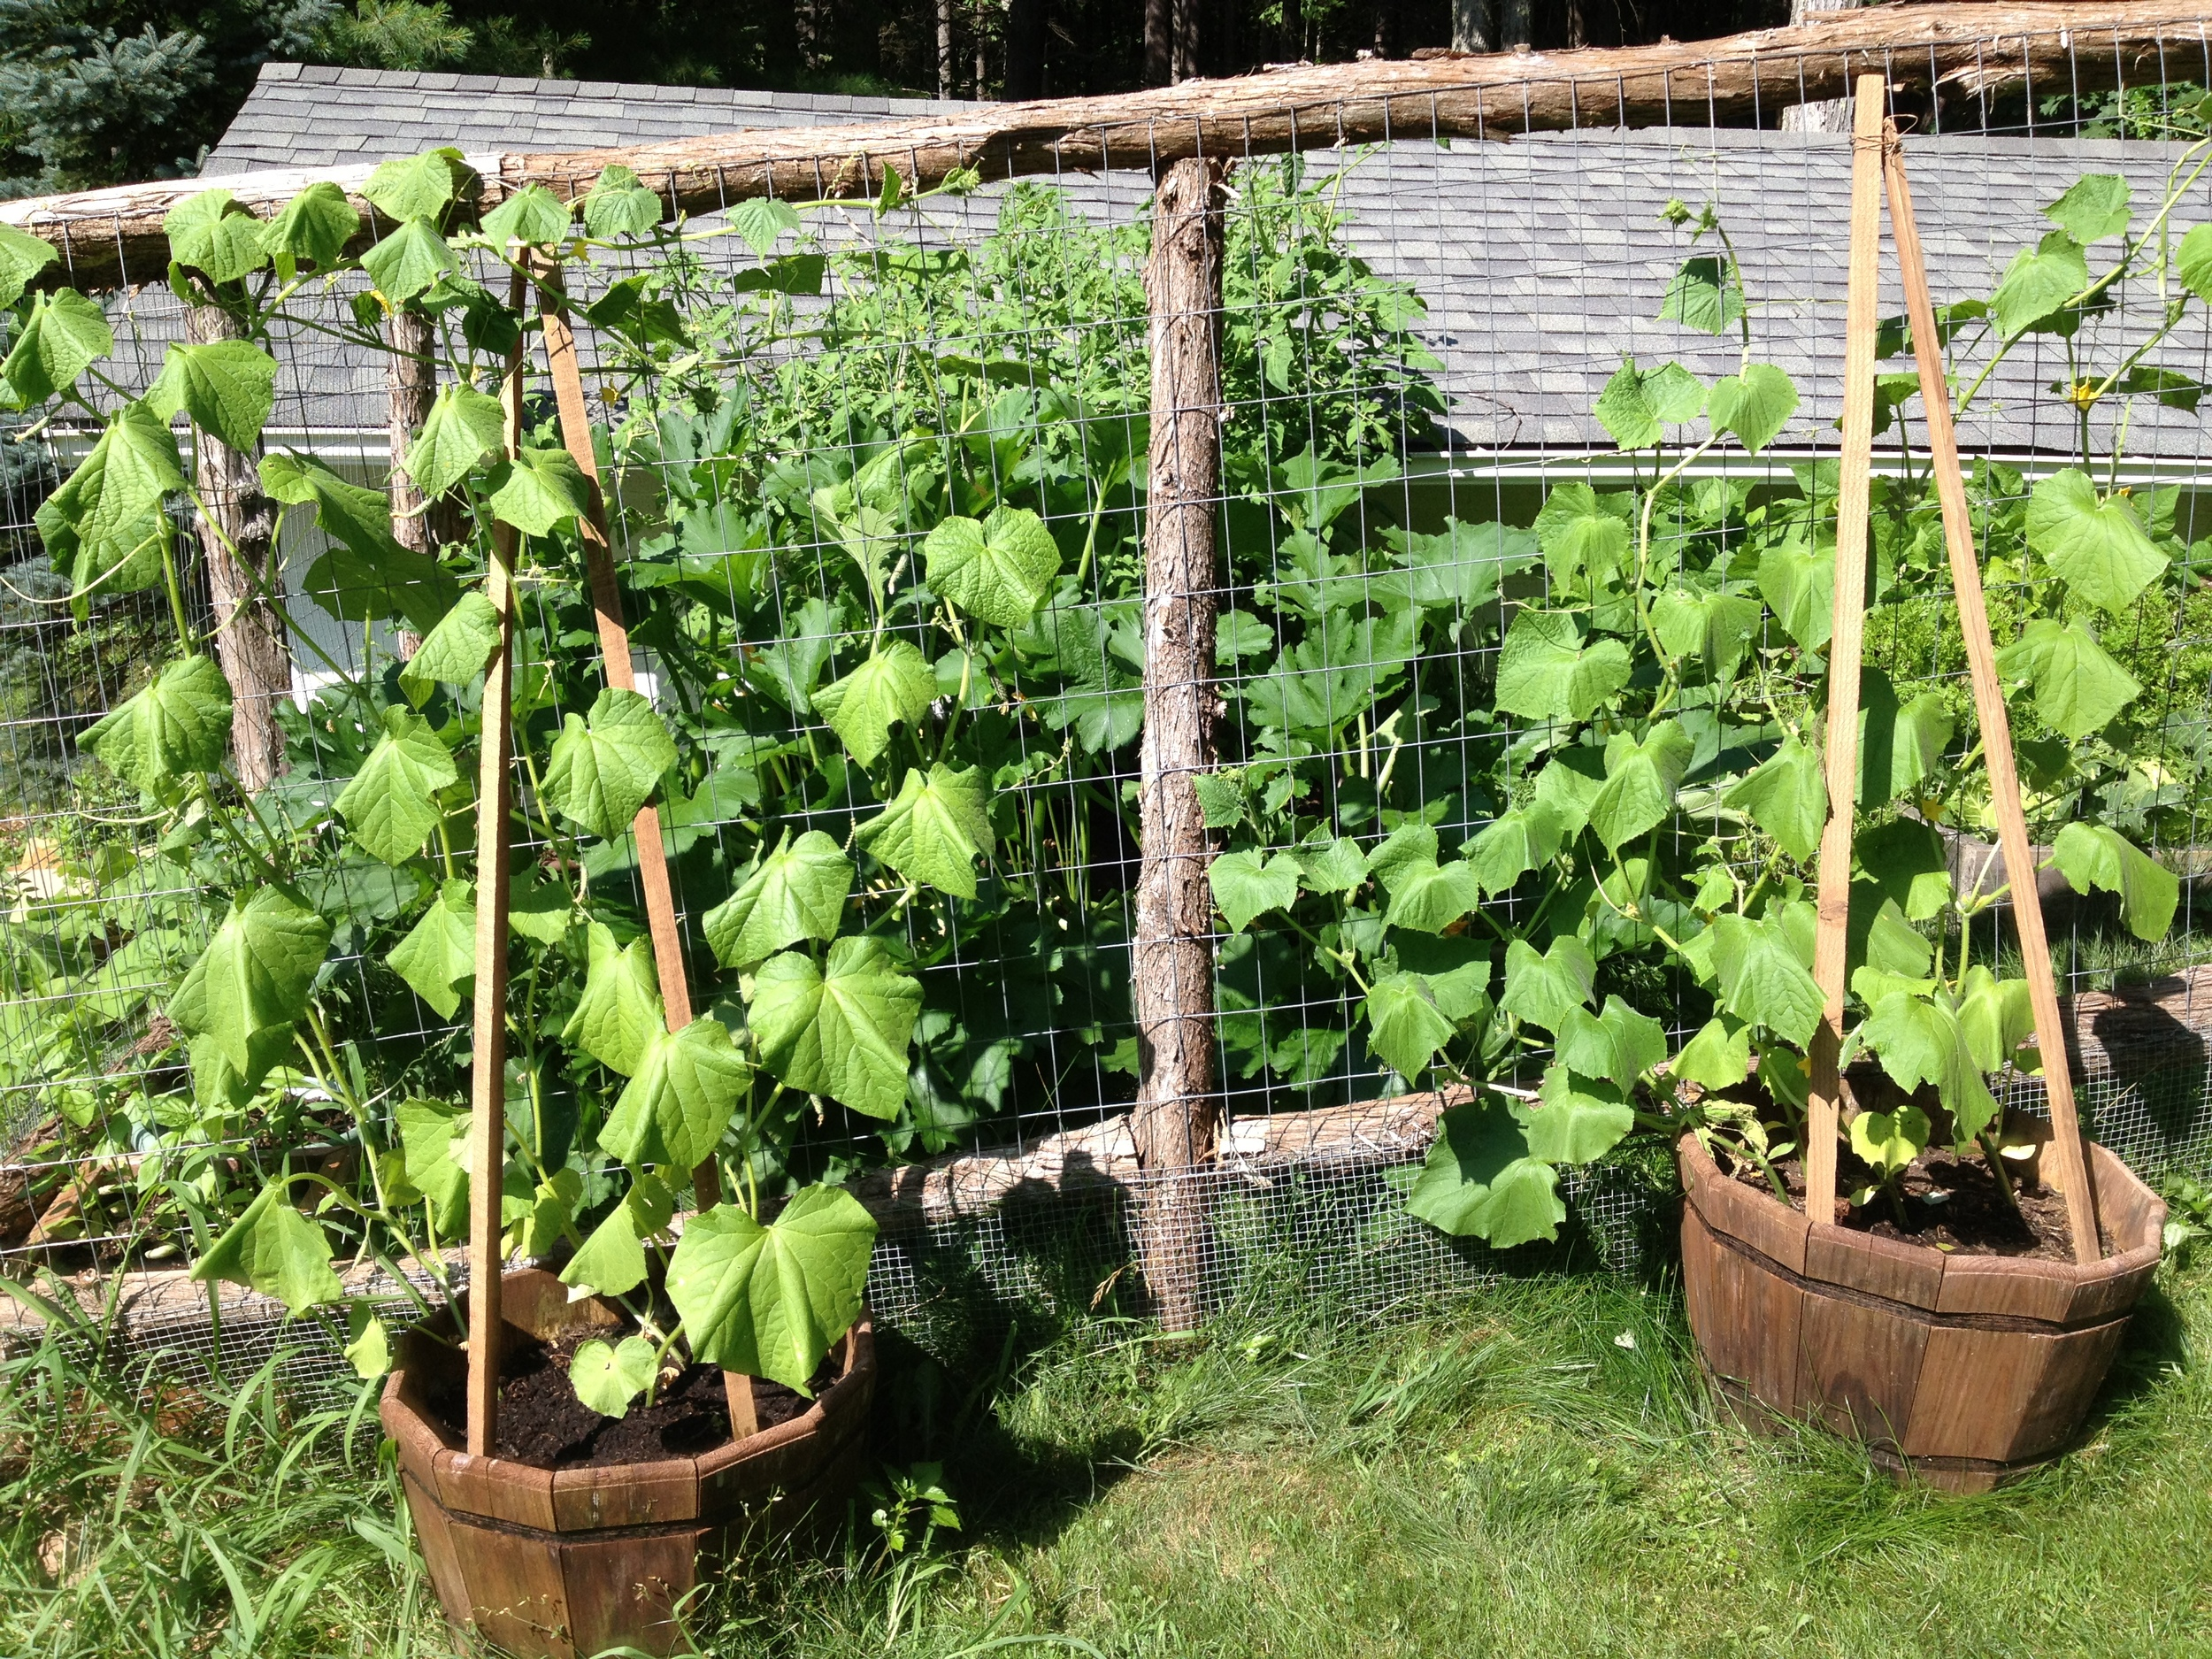 Cucumber plants climbing all over the fence.